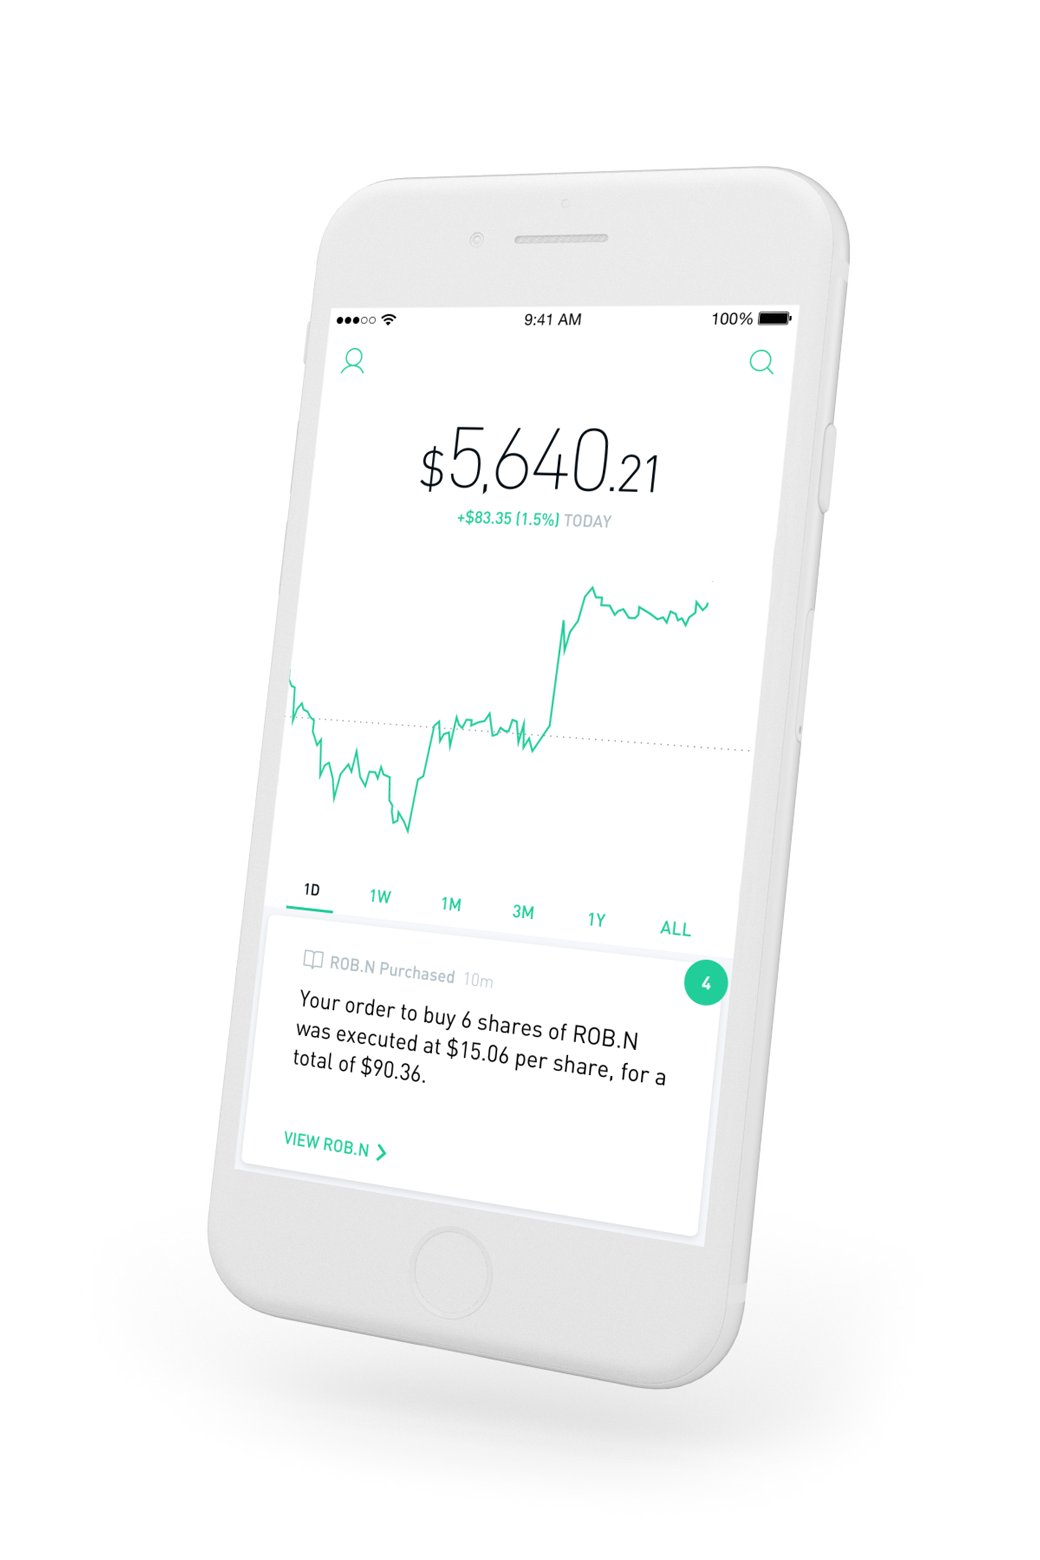 Robinhood Invest for Free This app is really awesome